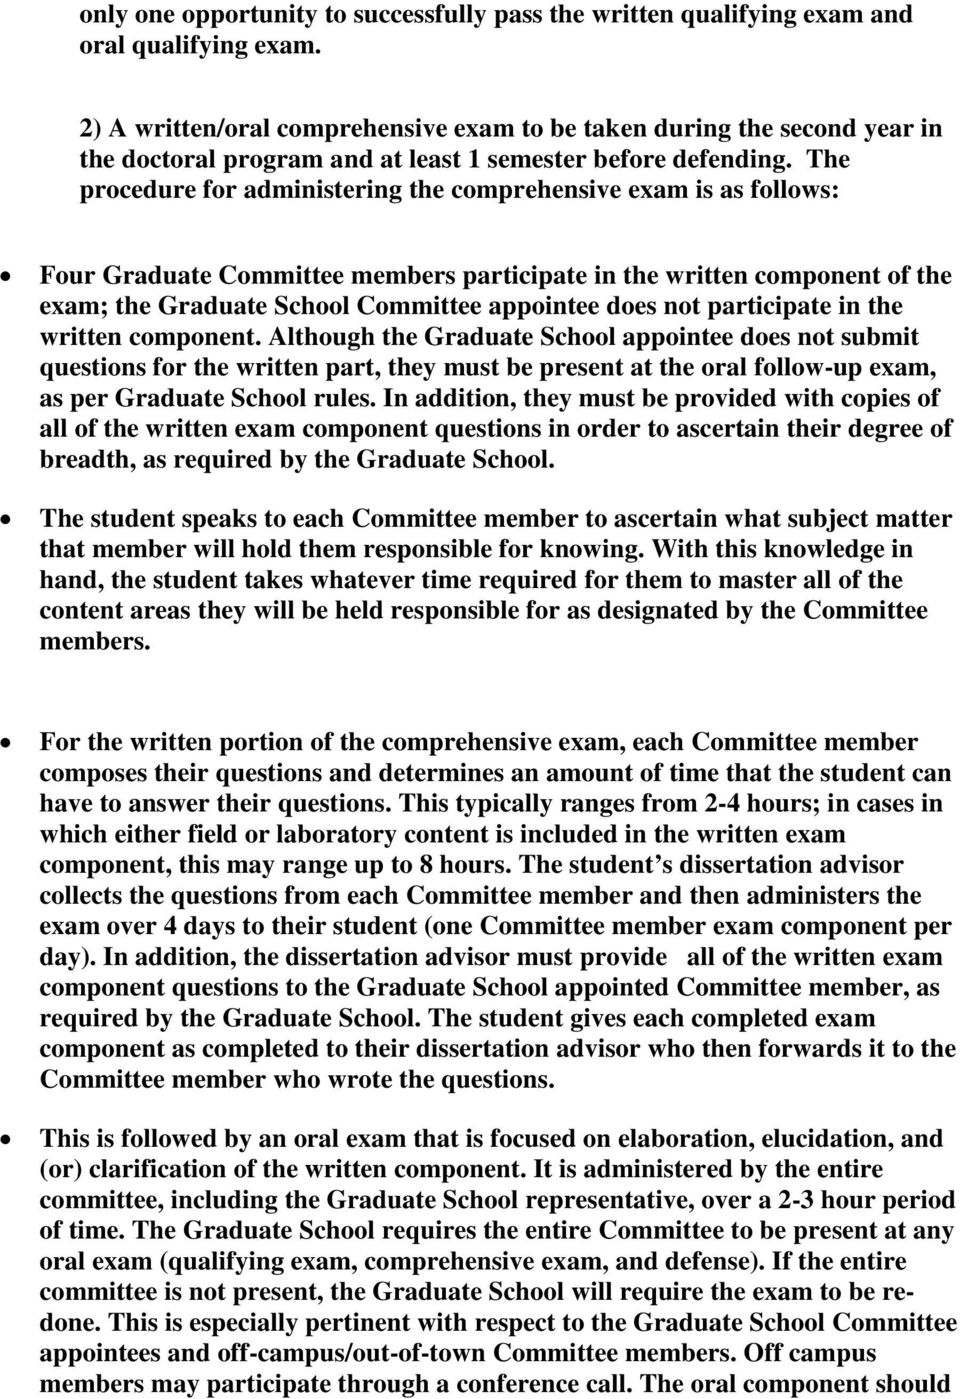 The procedure for administering the comprehensive exam is as follows: Four Graduate Committee members participate in the written component of the exam; the Graduate School Committee appointee does